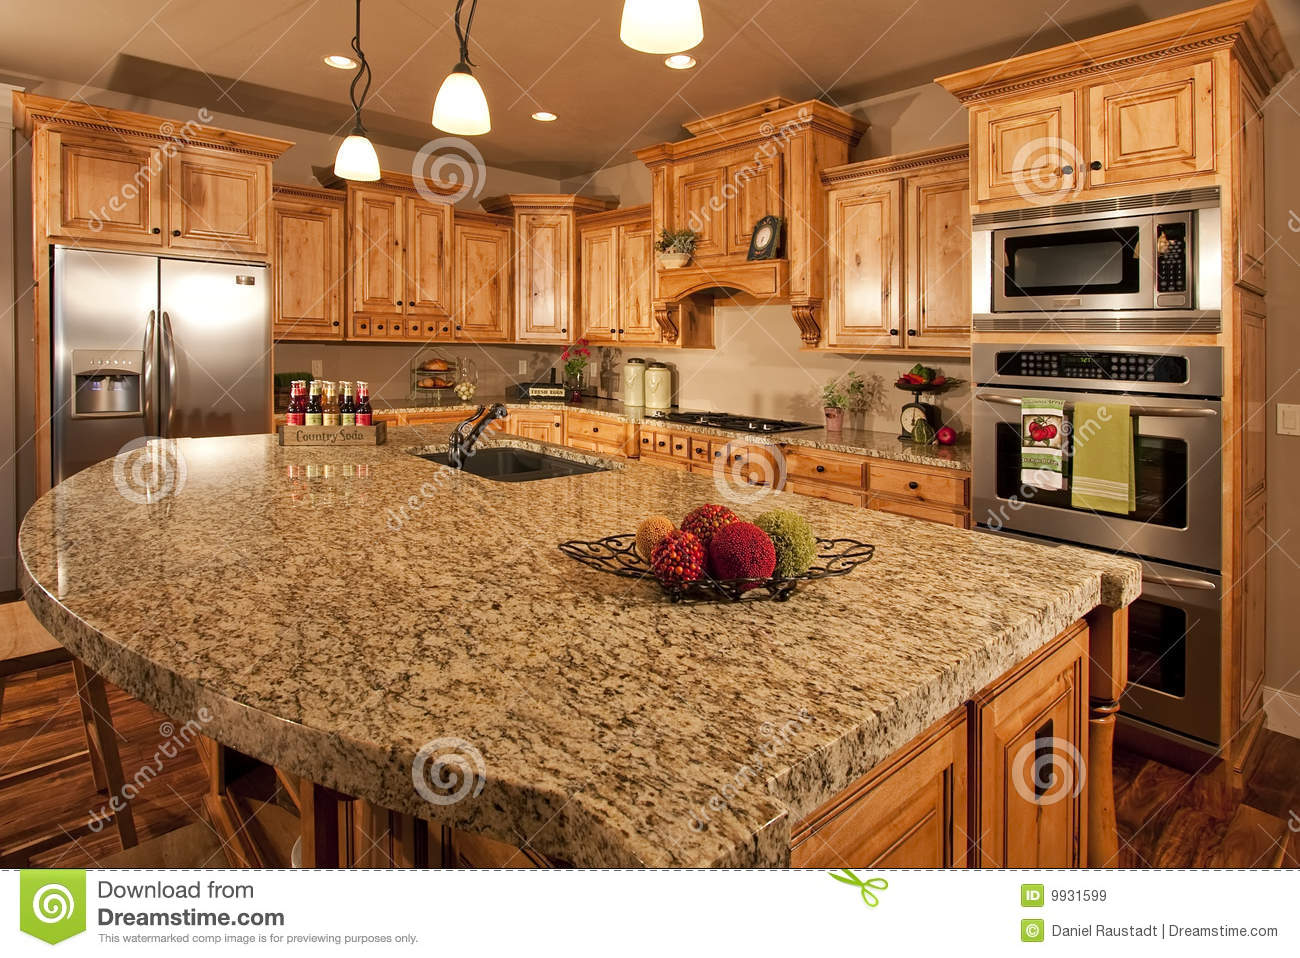 Modern Home Kitchen With Center Island Stock Image - Image ...